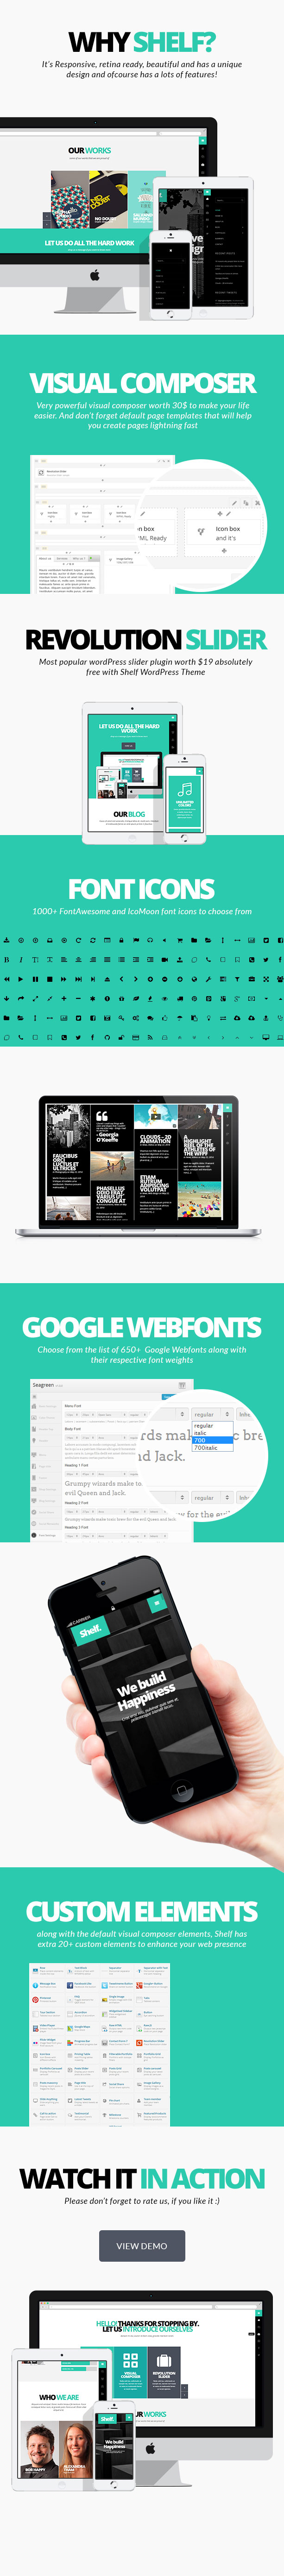 Shelf WordPress theme features